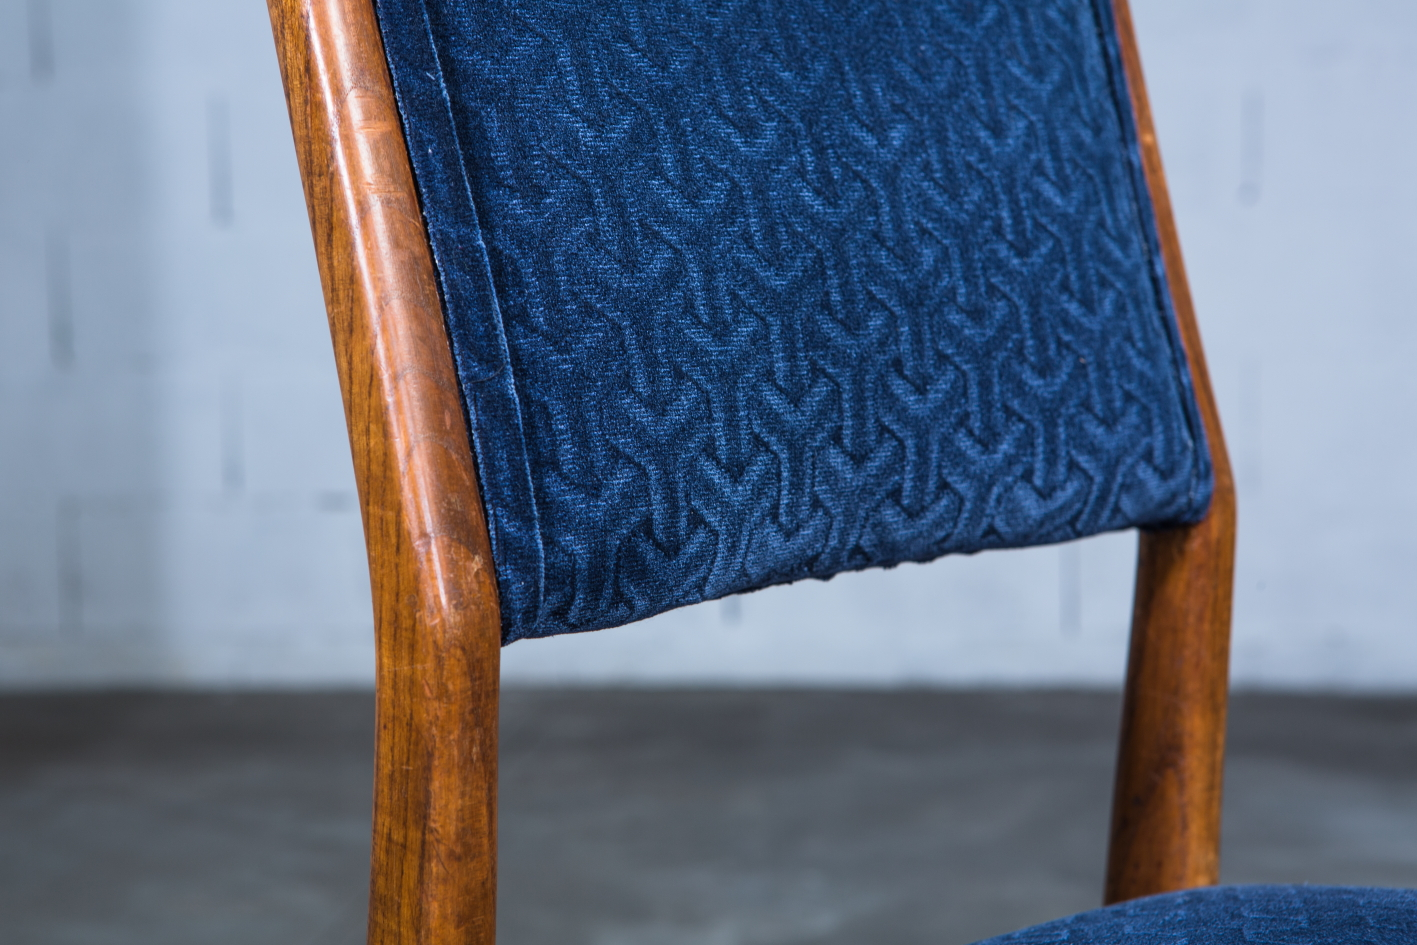 Six chairs designed by Gio Ponti for Figli di Amedeo Cassina (1950s) - Fabric detail